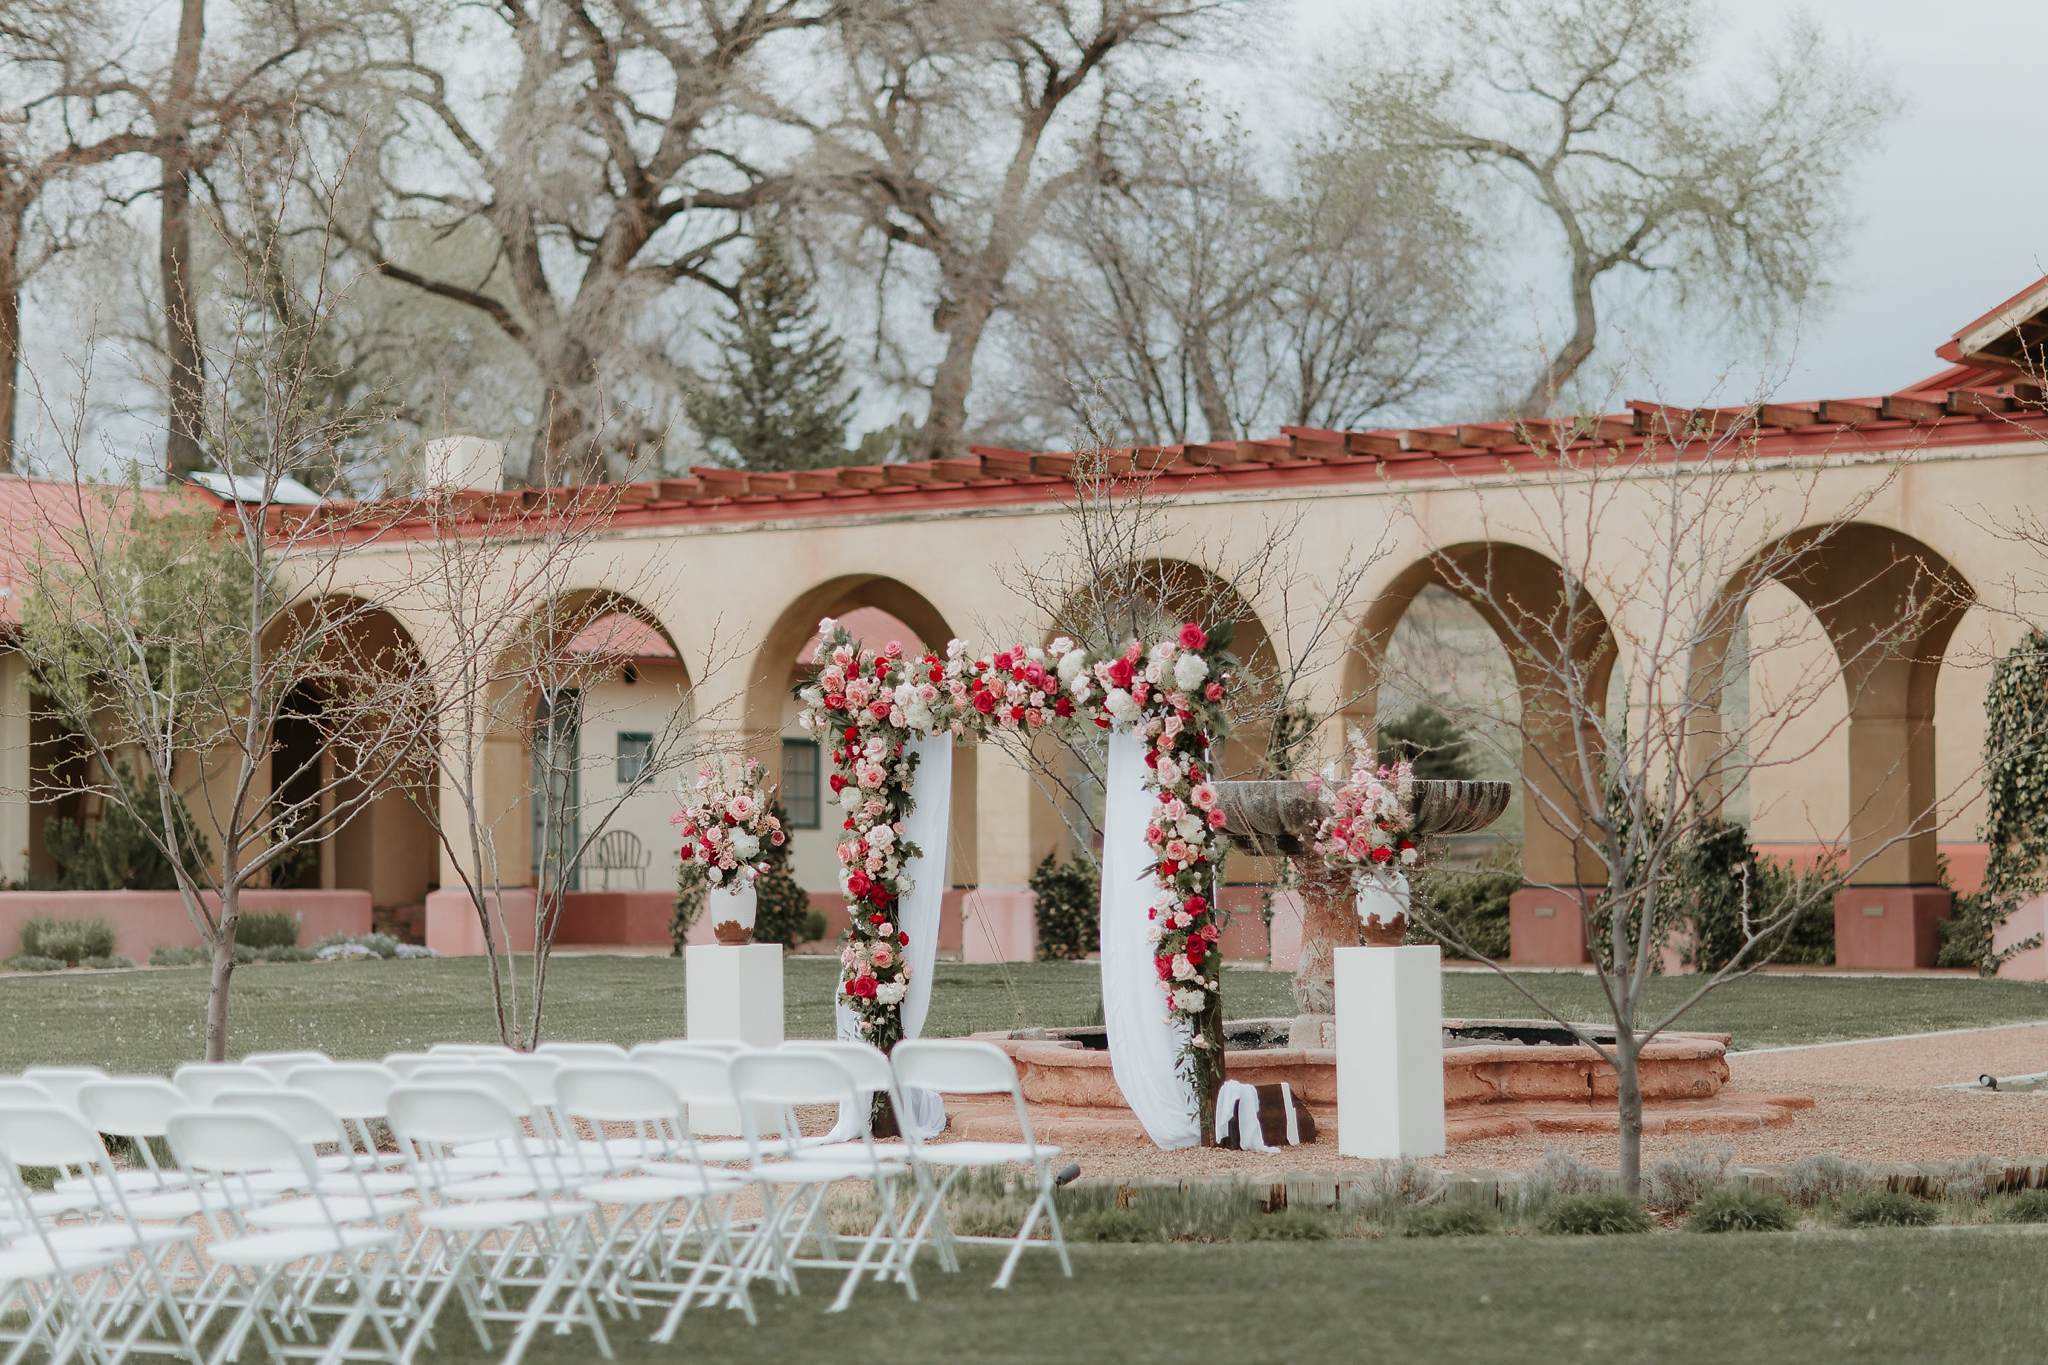 Alicia+lucia+photography+-+albuquerque+wedding+photographer+-+santa+fe+wedding+photography+-+new+mexico+wedding+photographer+-+new+mexico+wedding+-+wedding+planner+-+just+lovely+weddings+-+new+mexico+wedding+planner_0043.jpg